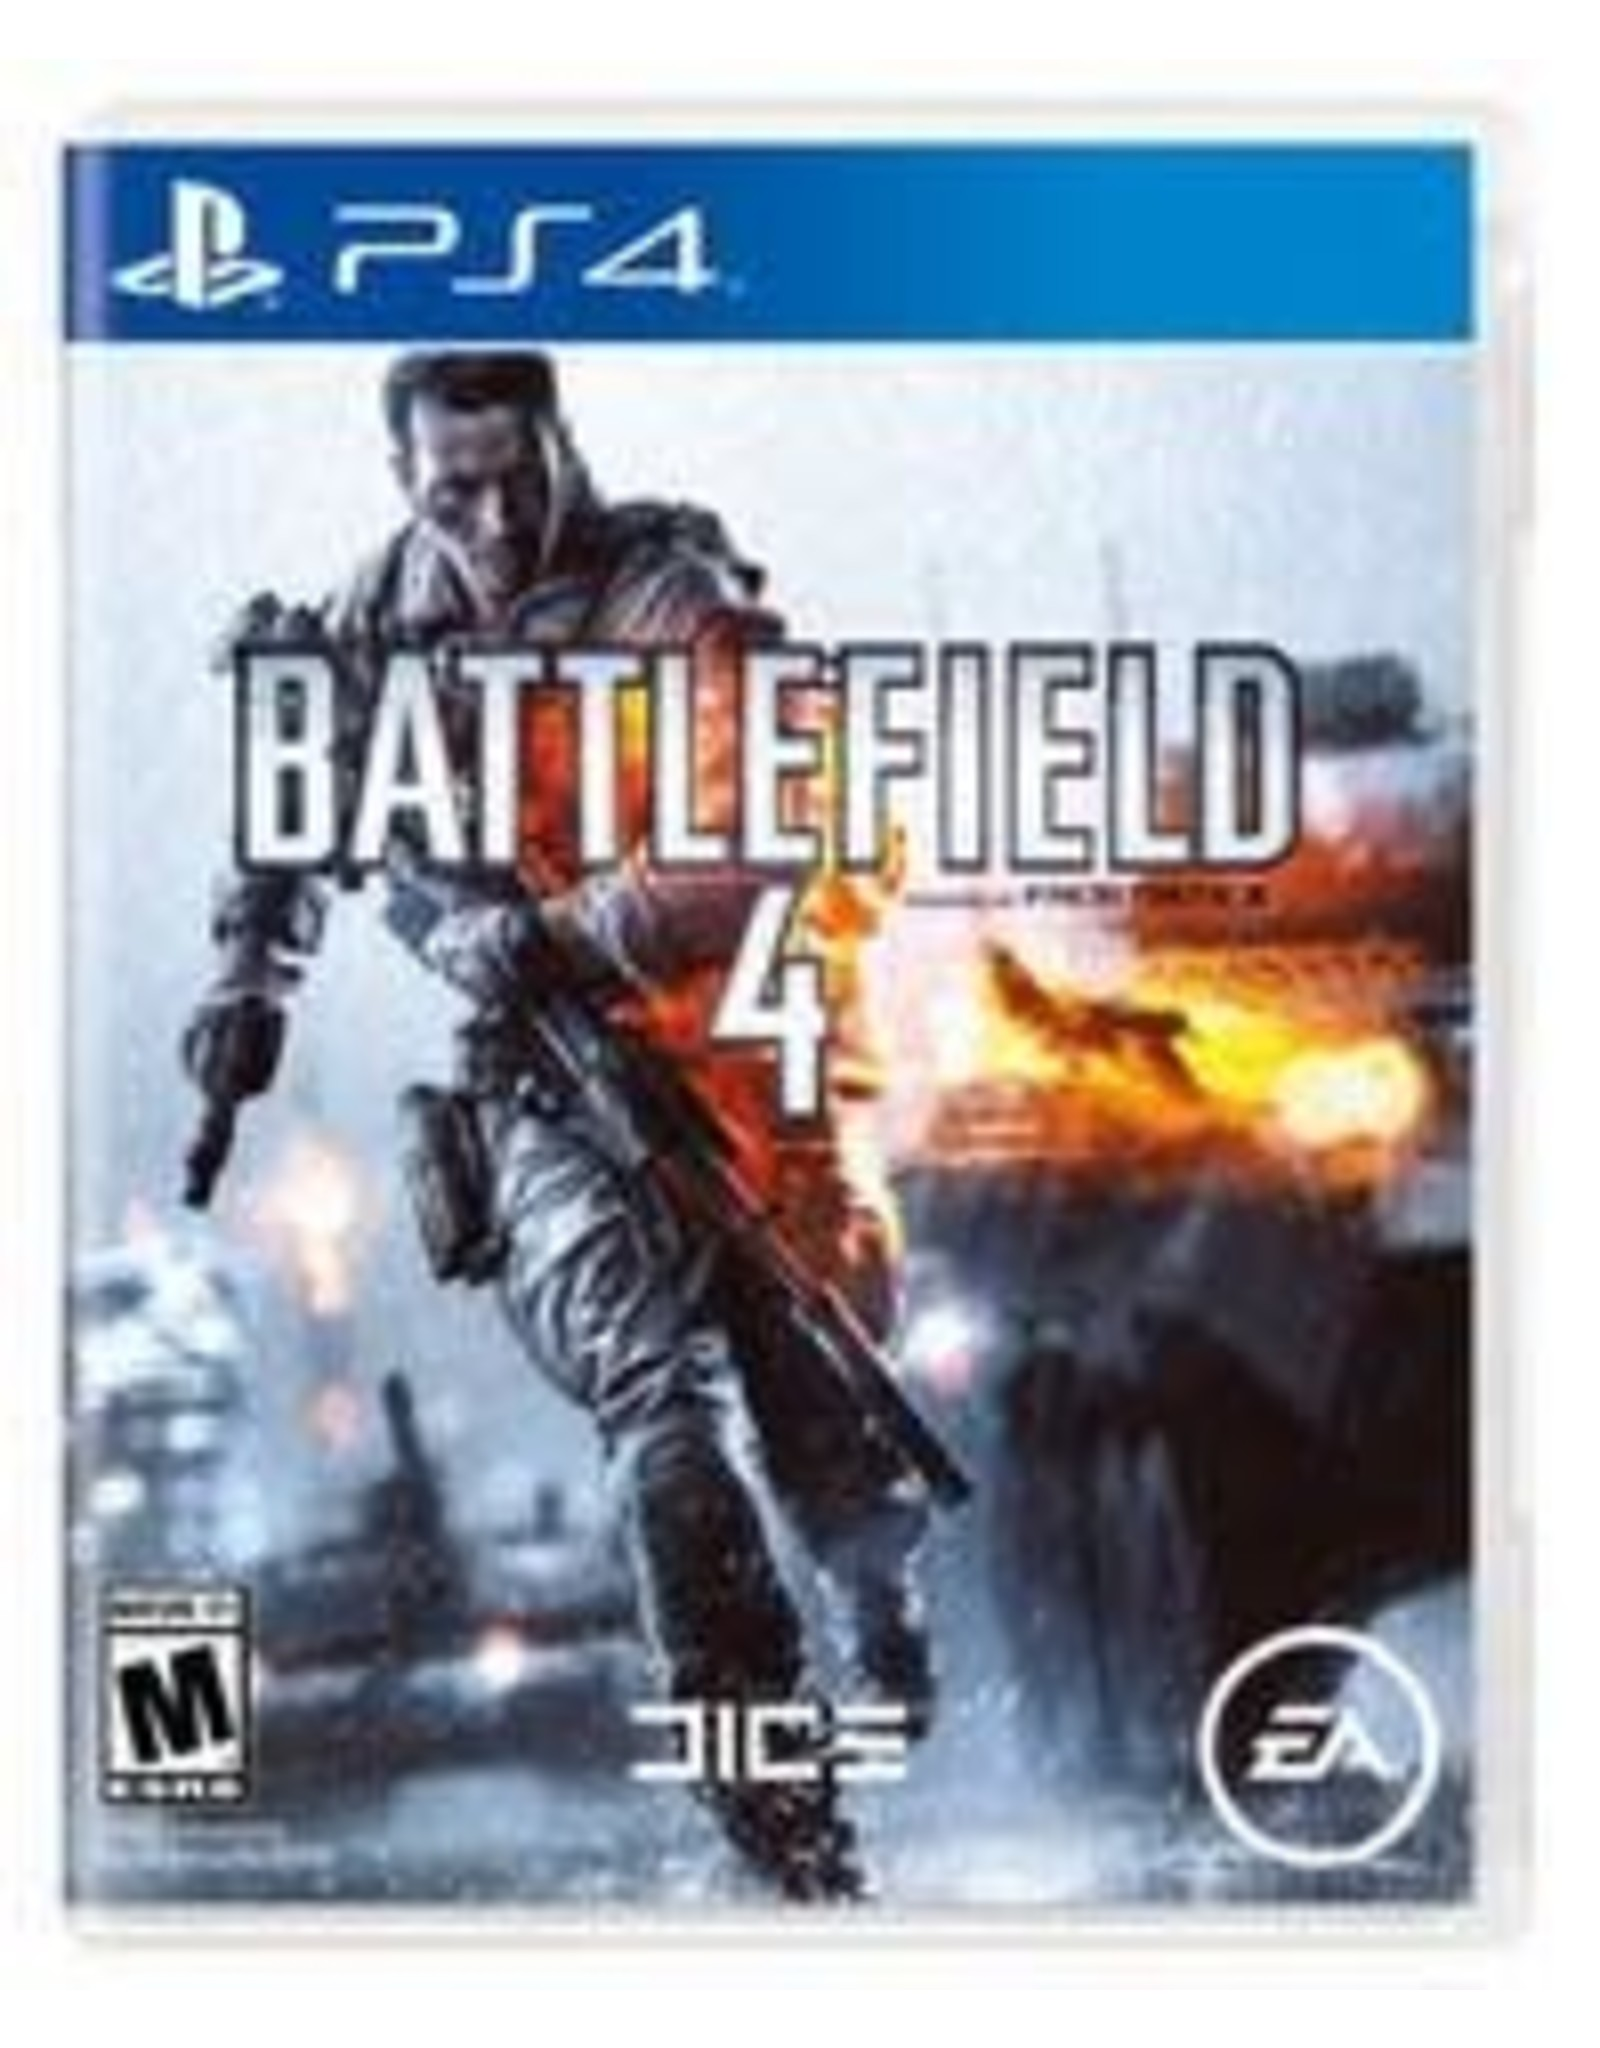 Playstation 4 Battlefield 4 (Used)